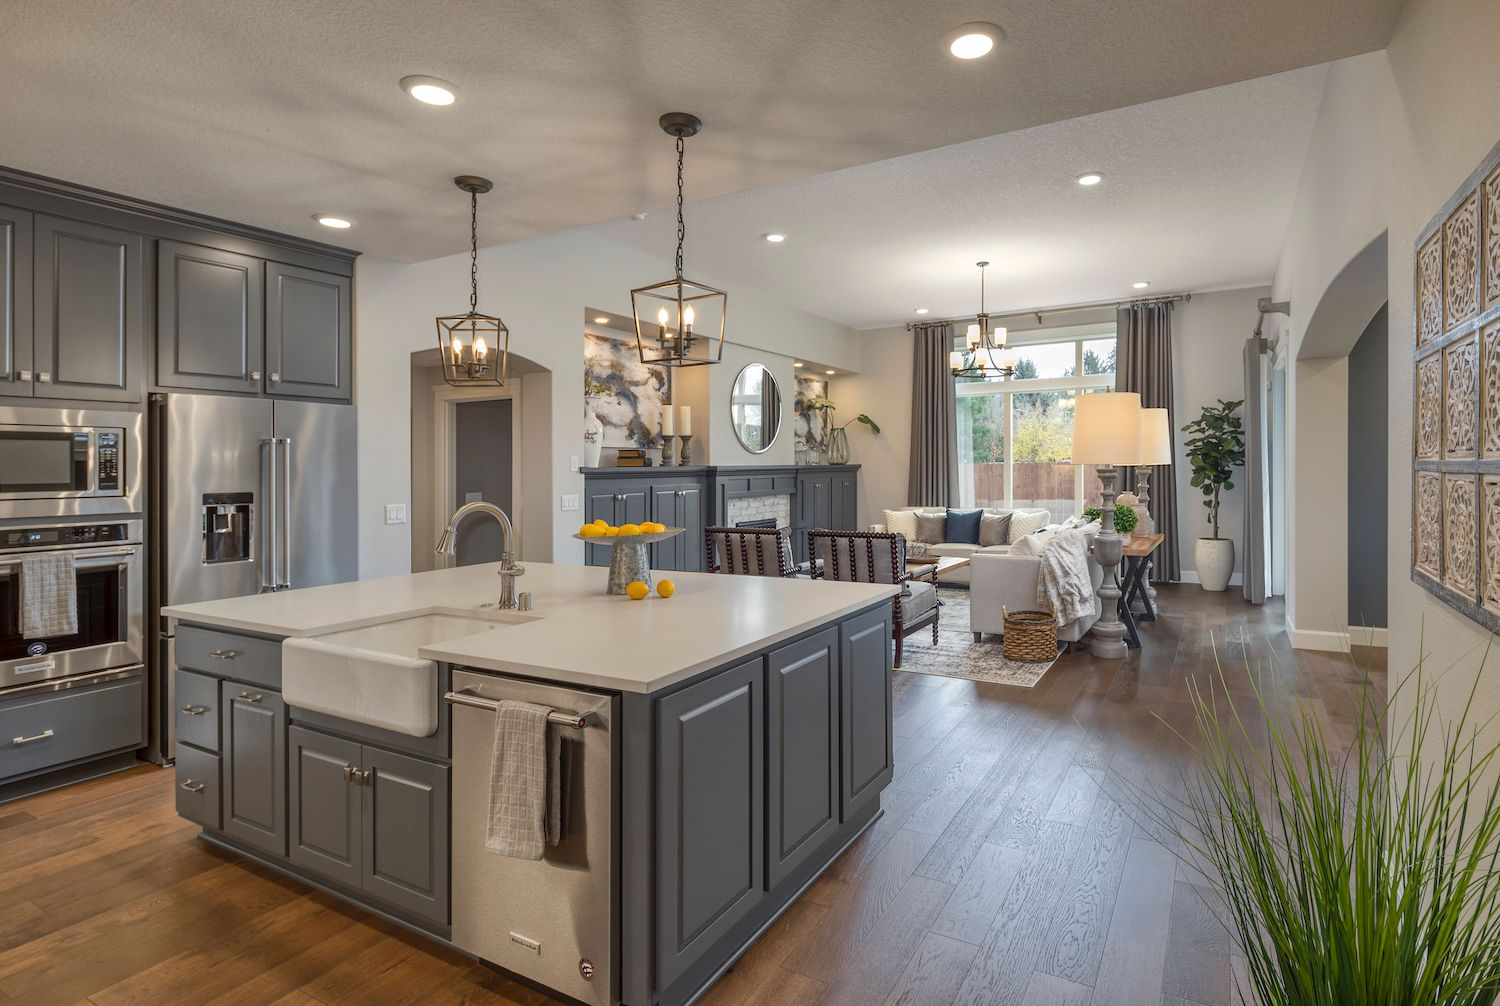 Kitchen featured in the Willamette By New Tradition Homes in Richland, WA